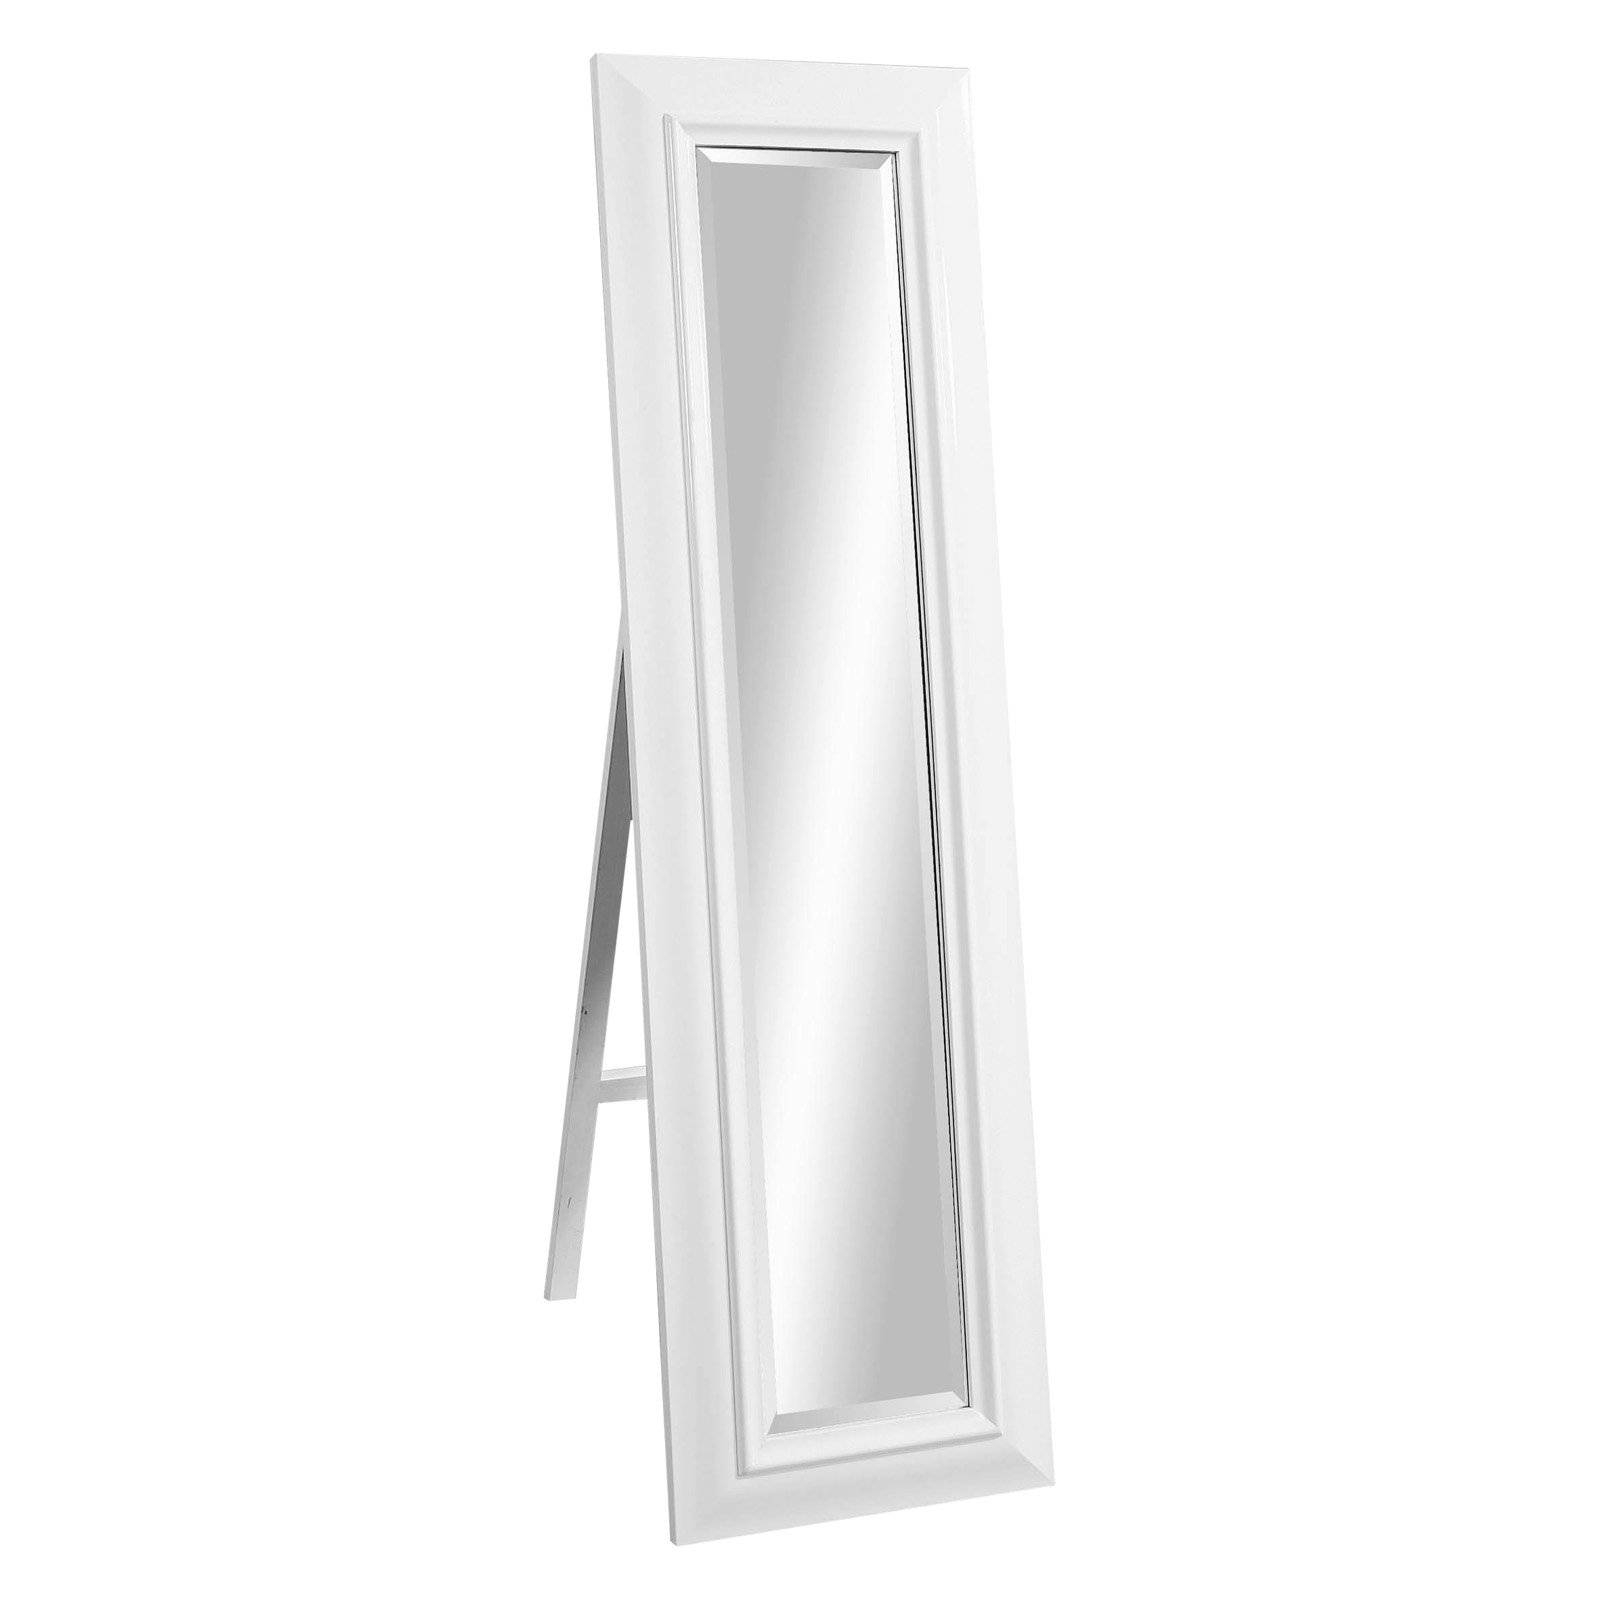 Homeware: Oval Full Length Standing Mirror | Large Floor Mirrors with regard to Buy Free Standing Mirrors (Image 18 of 25)